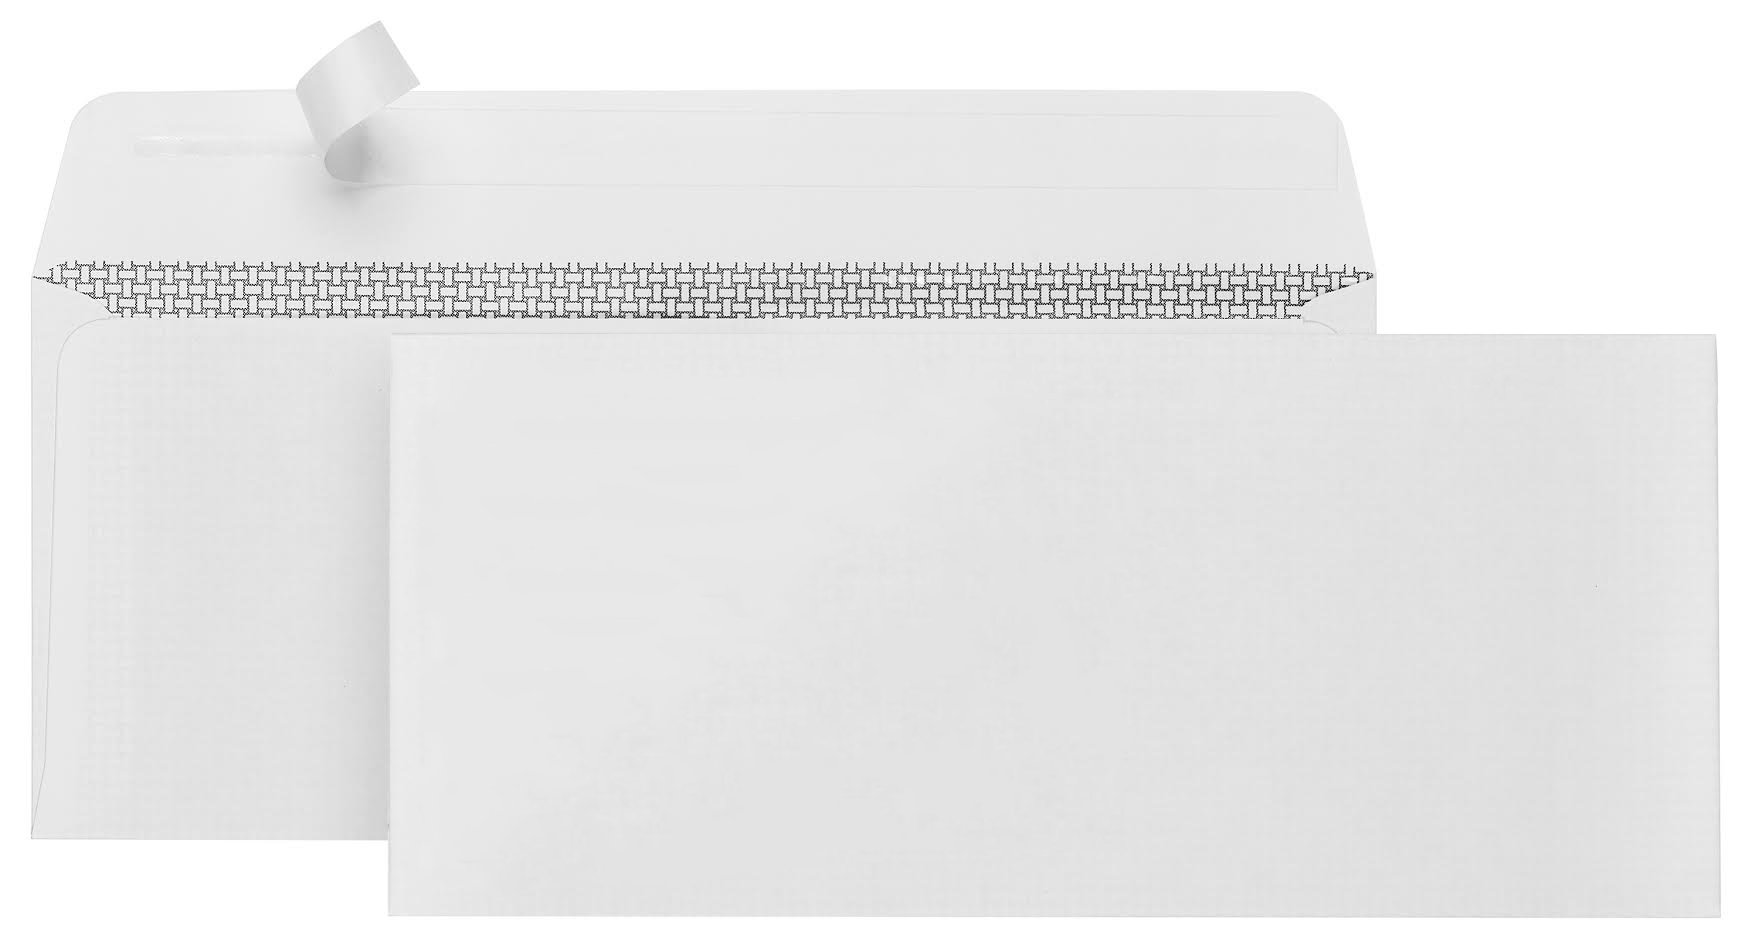 500 #10 Self Seal Security Envelopes-Designed for Secure Mailing-Security Tinted with Printer Friendly Design- 4 1/8 x 9 ½''-Pack of 500